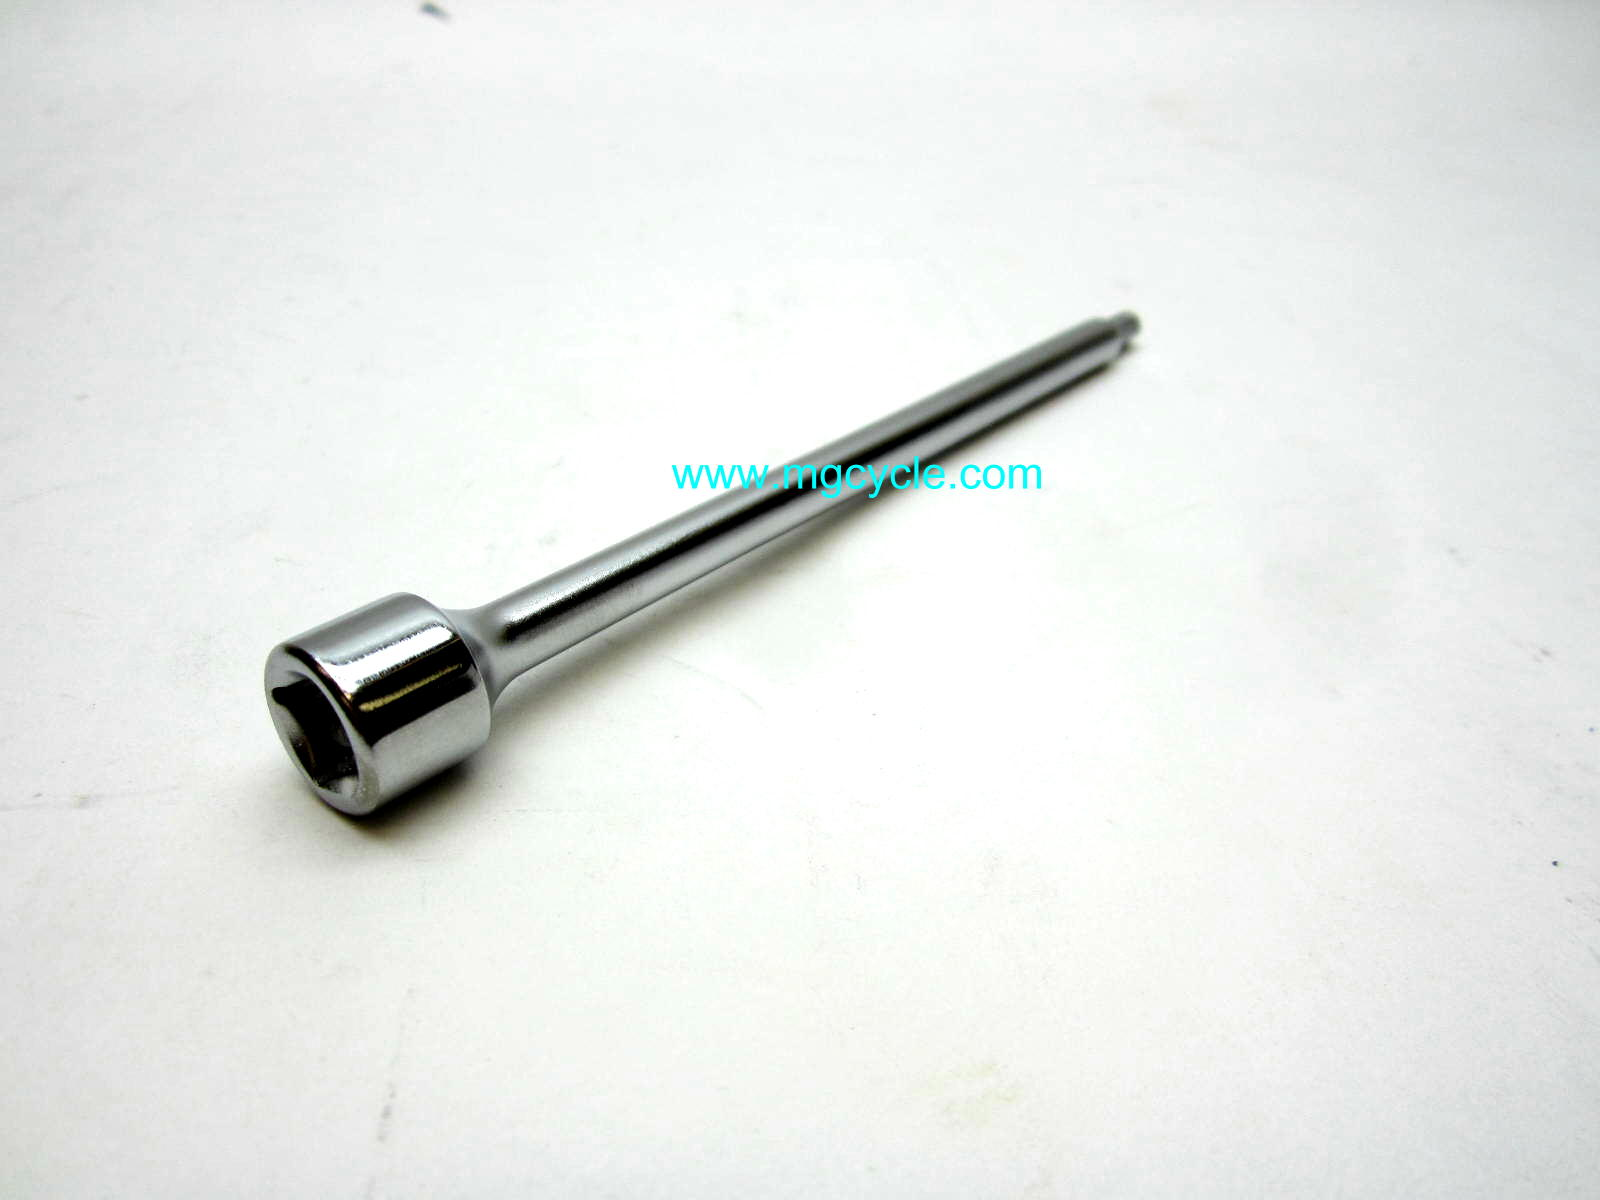 "5mm allen key extension for 3/8"" drive"